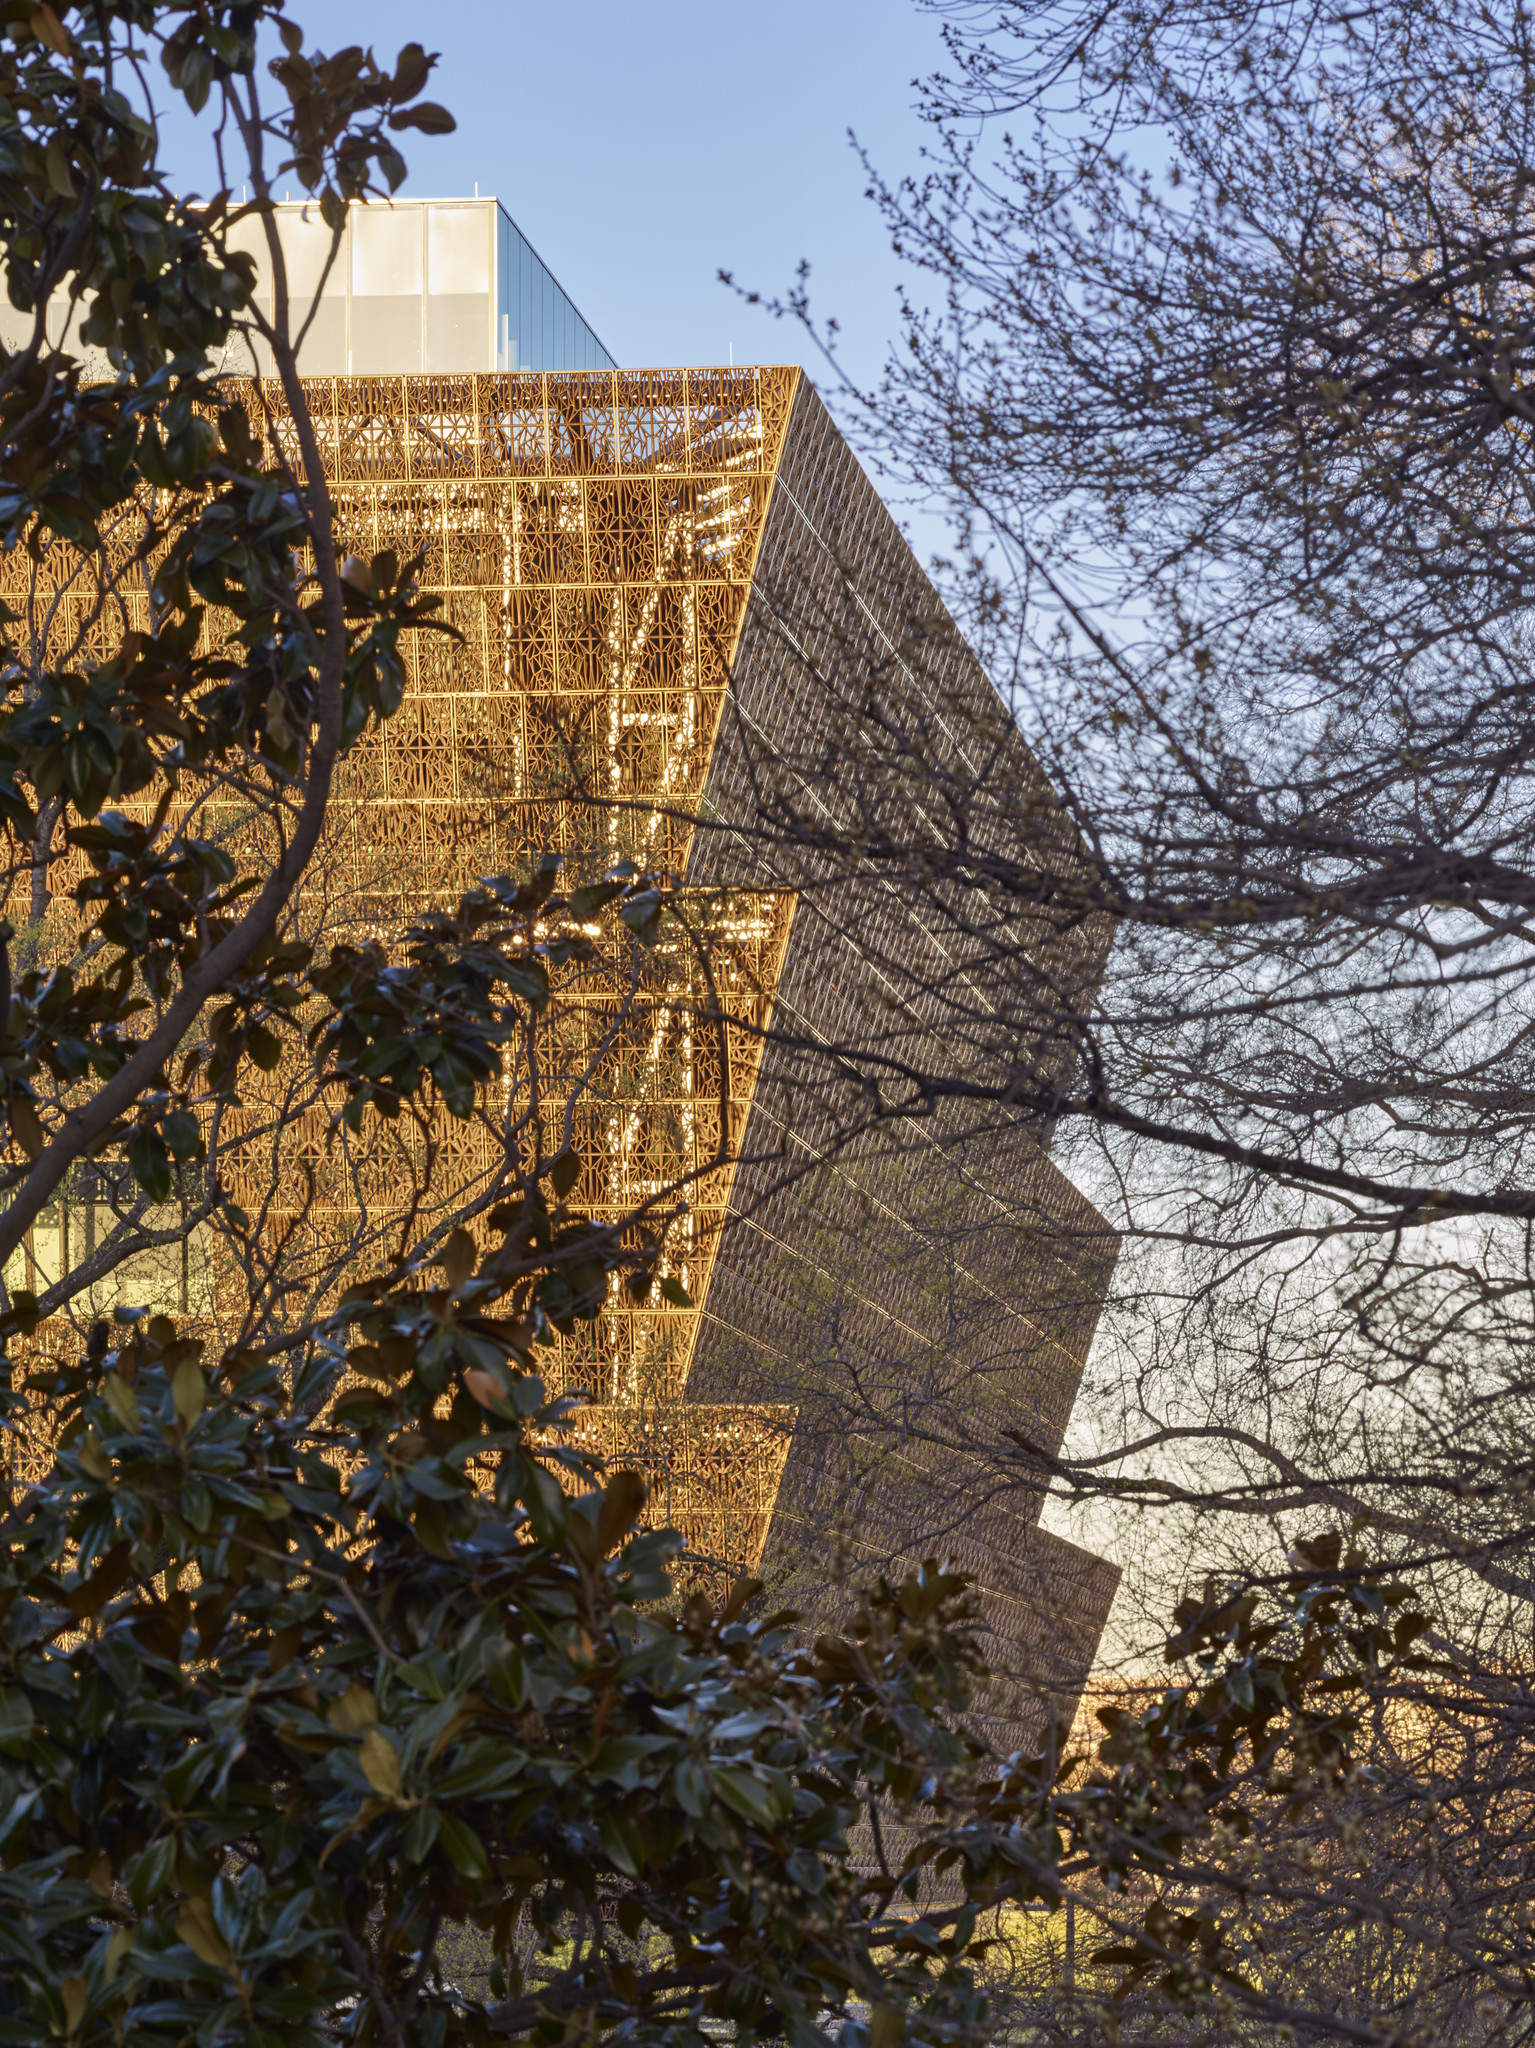 The panels wrapping the exterior of the museum are inspired by ironwork created by American slaves.